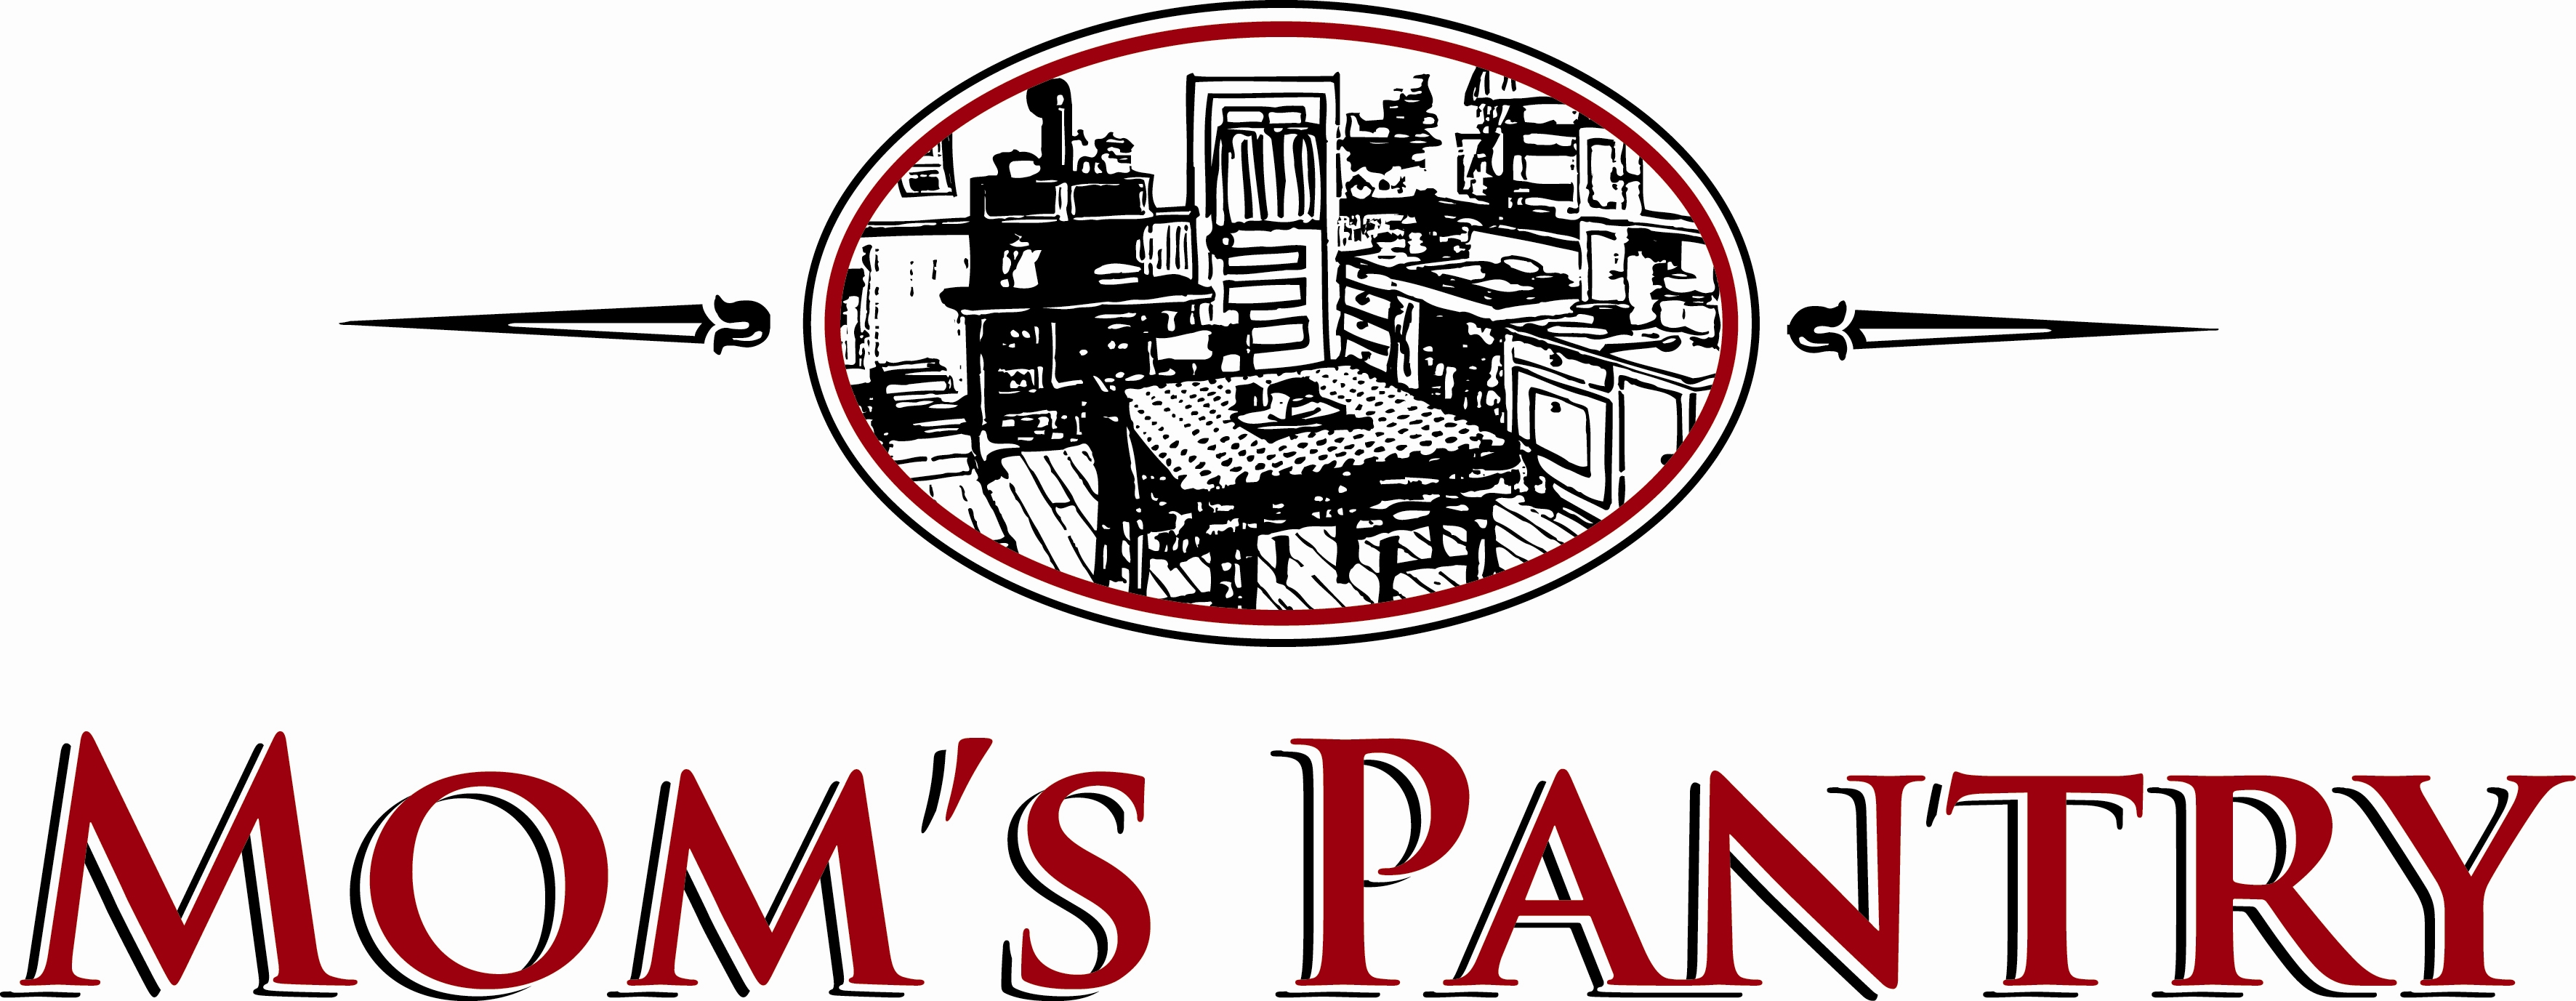 Image result for moms pantry